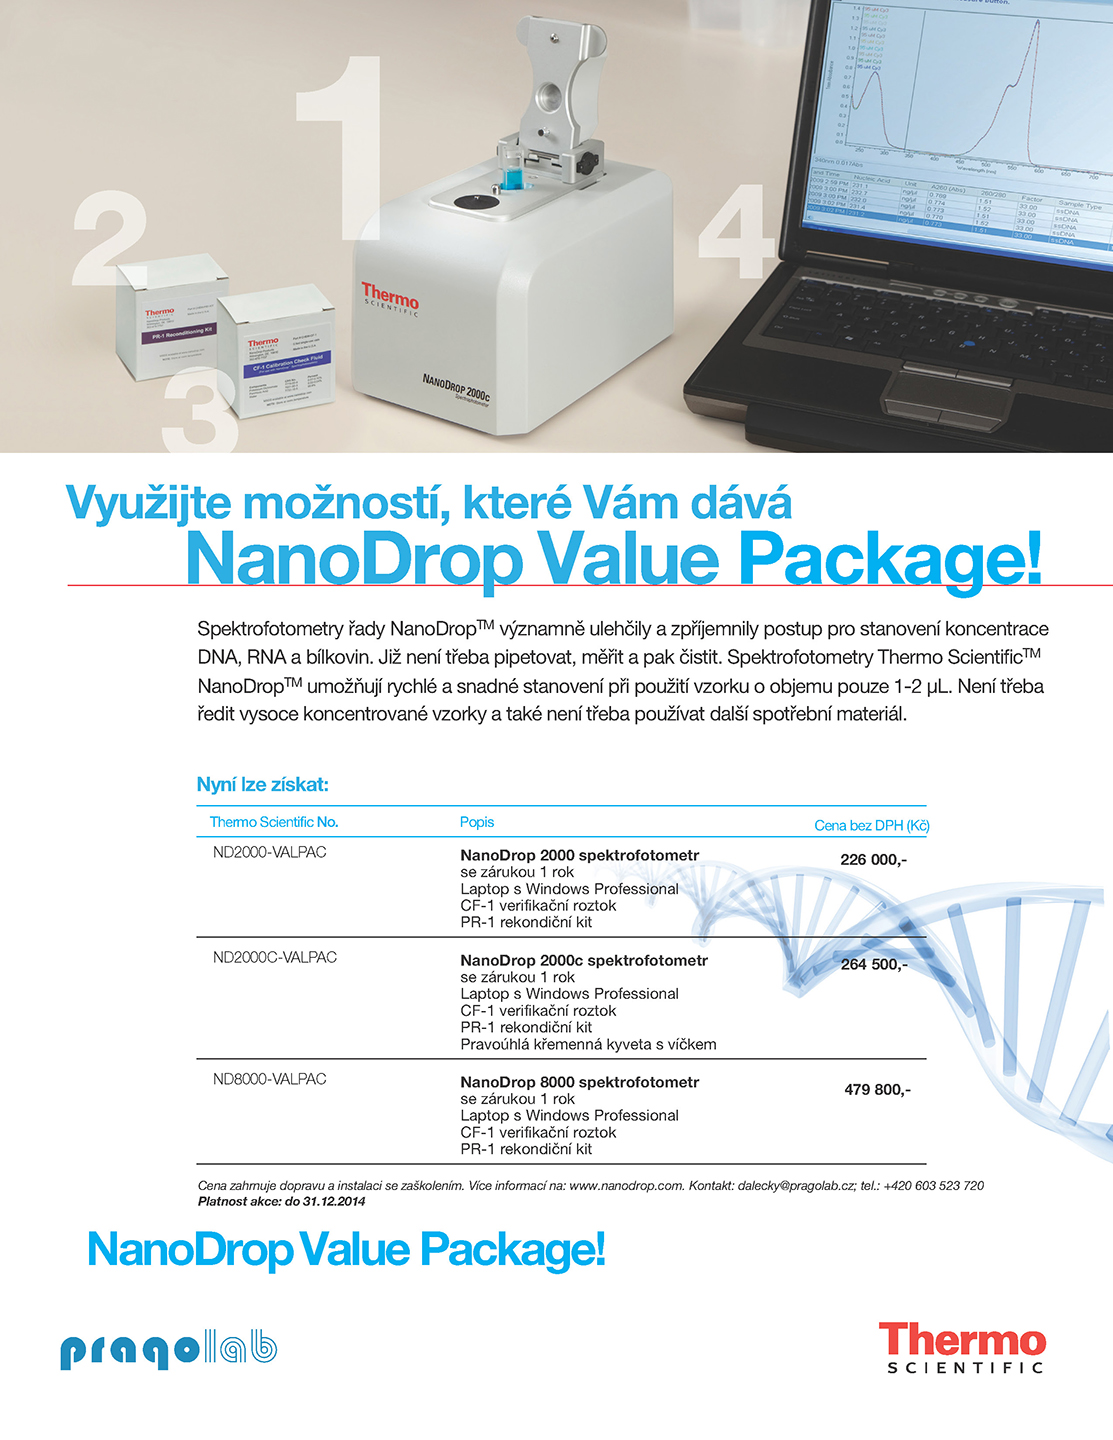 NanoDrop_Value_Package_CZ.jpg